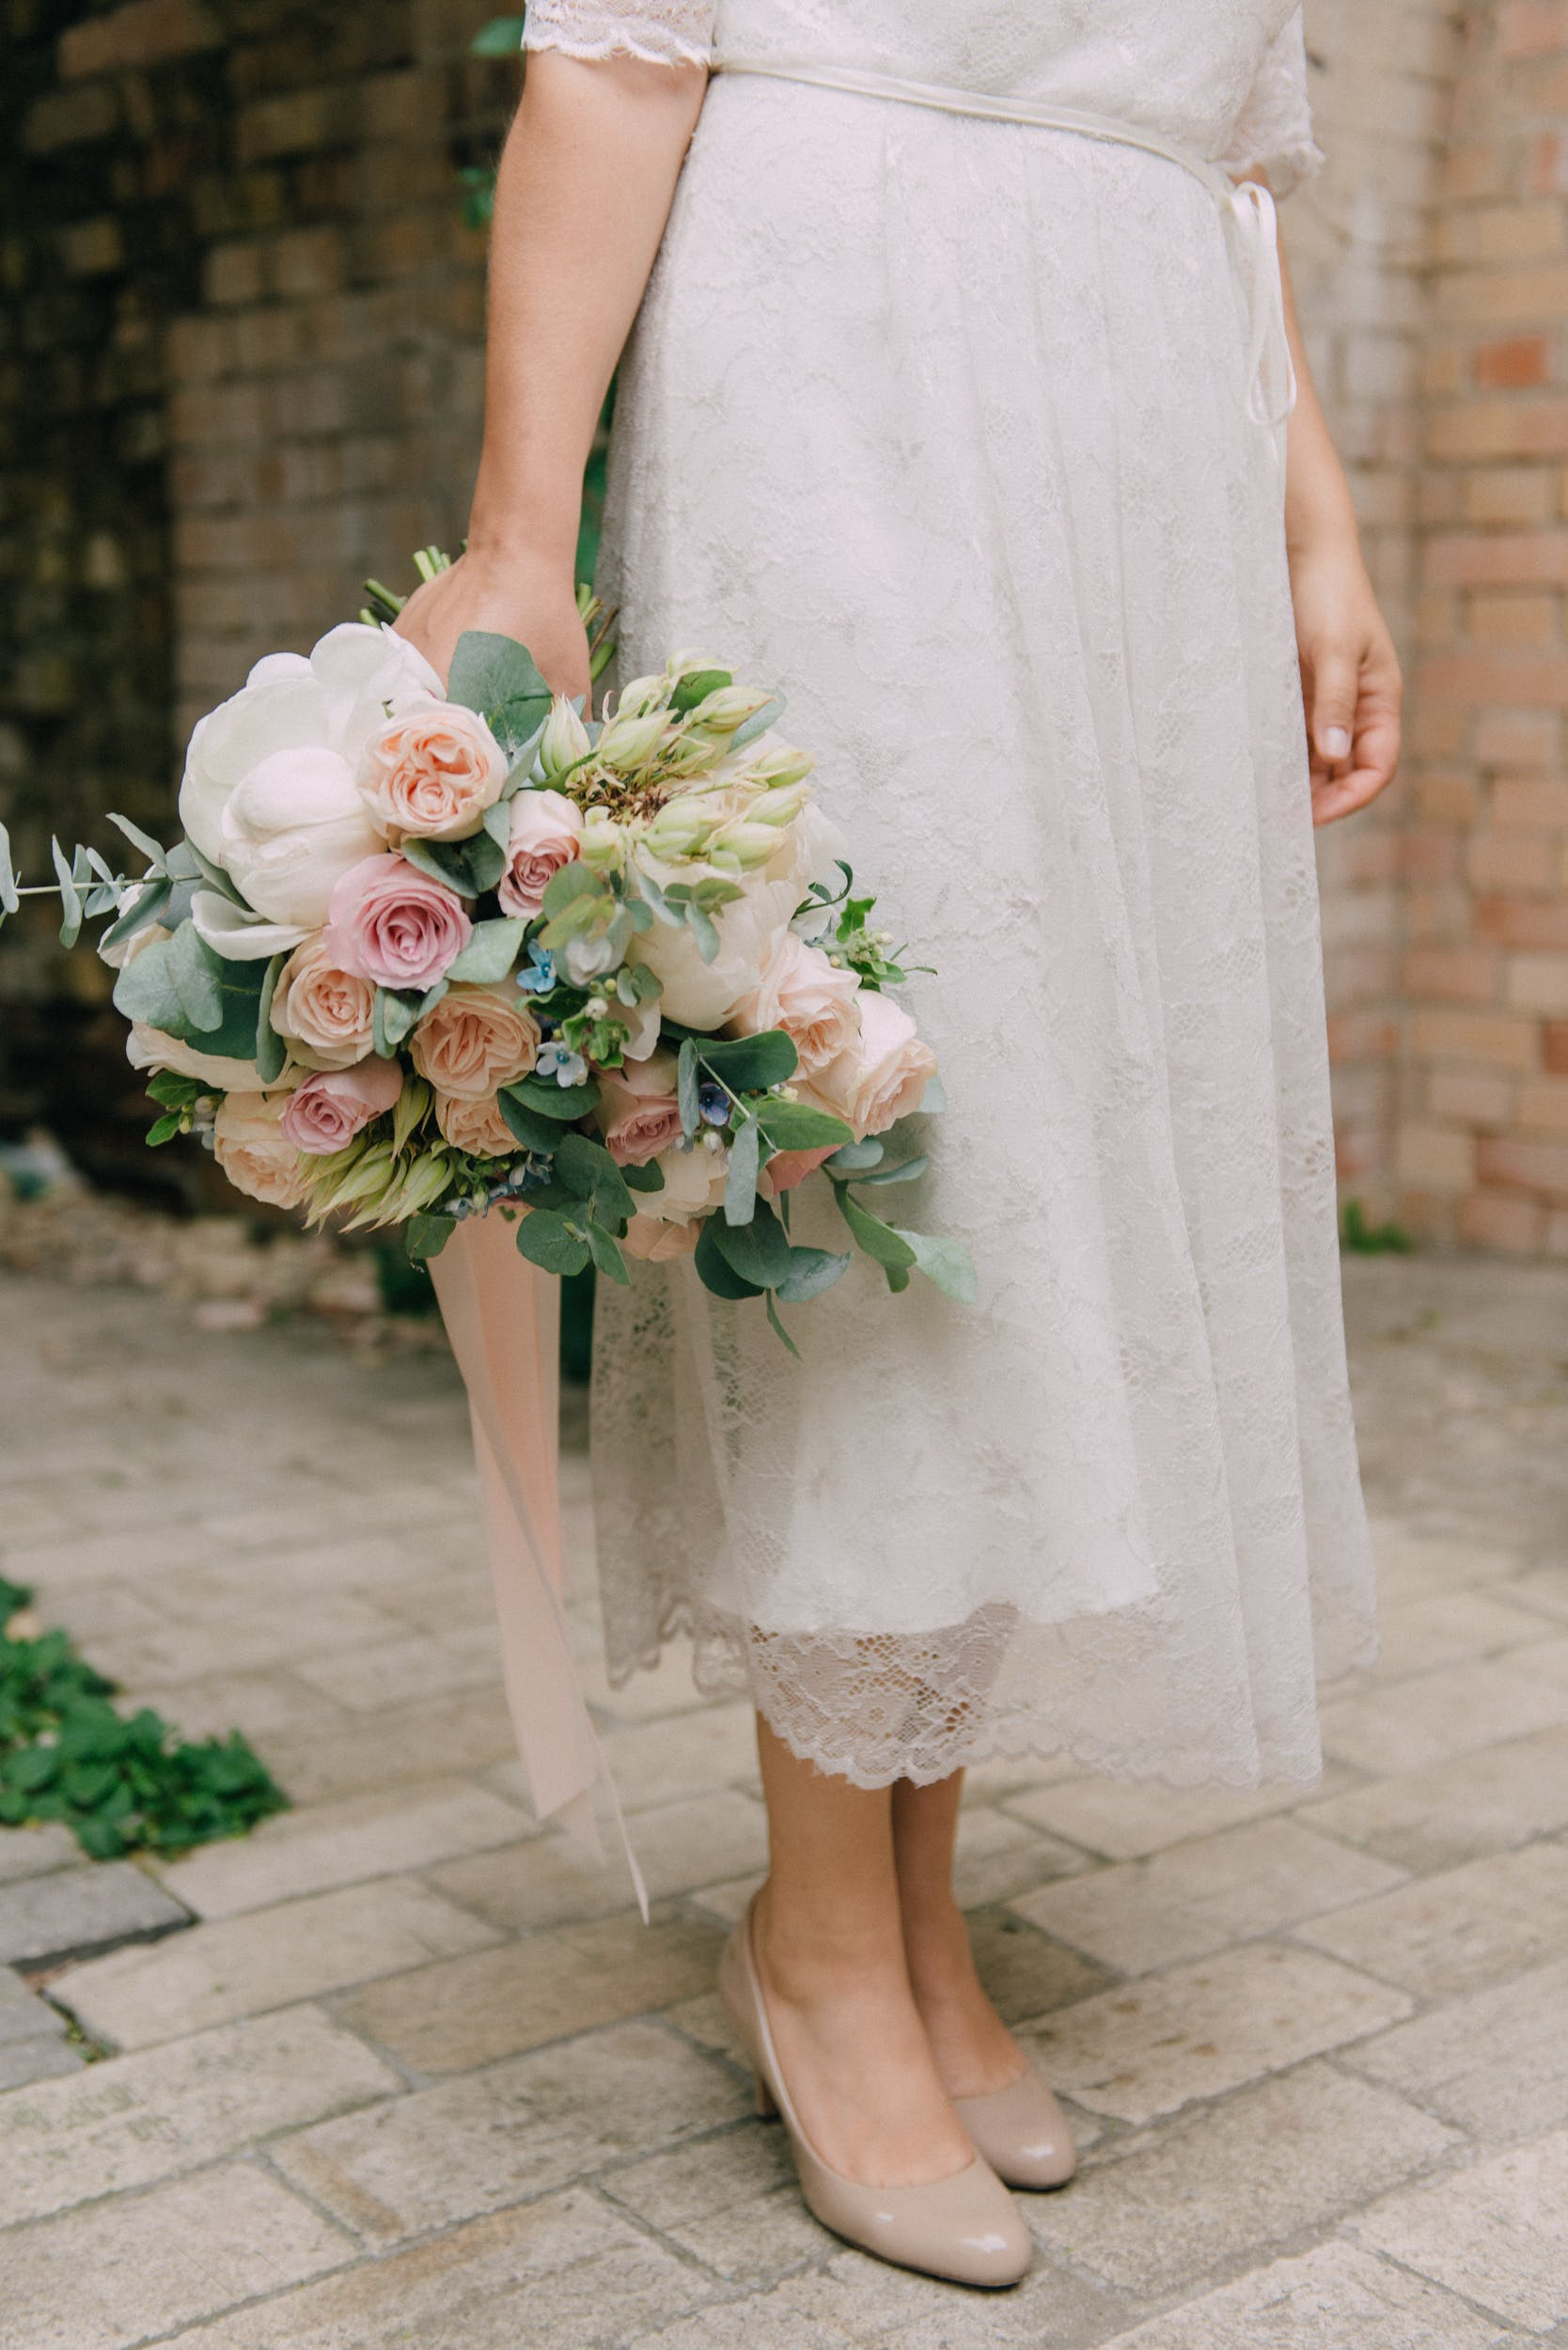 Person Holding Bouquet